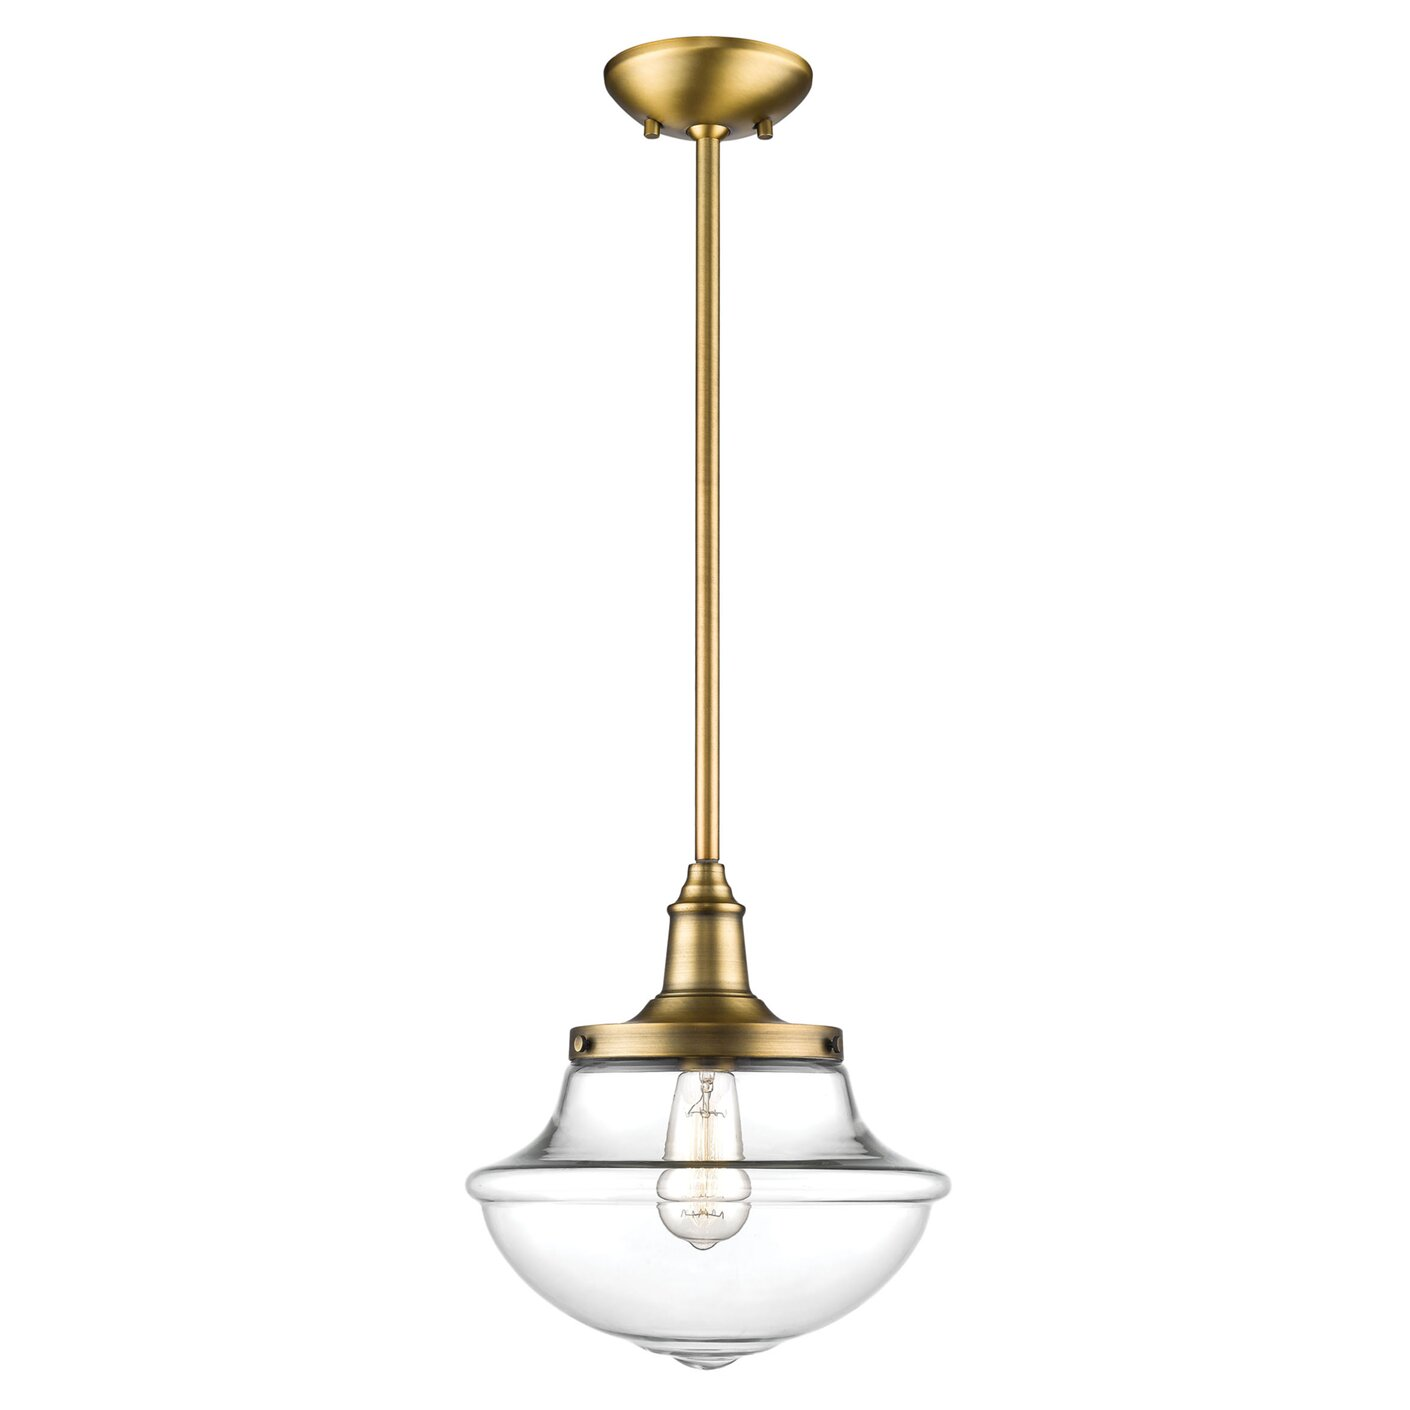 pin w l dimensions glassfeatures elk upright weight bronze schoolhouse pendants and light lbs led oiled finish in pendant white h